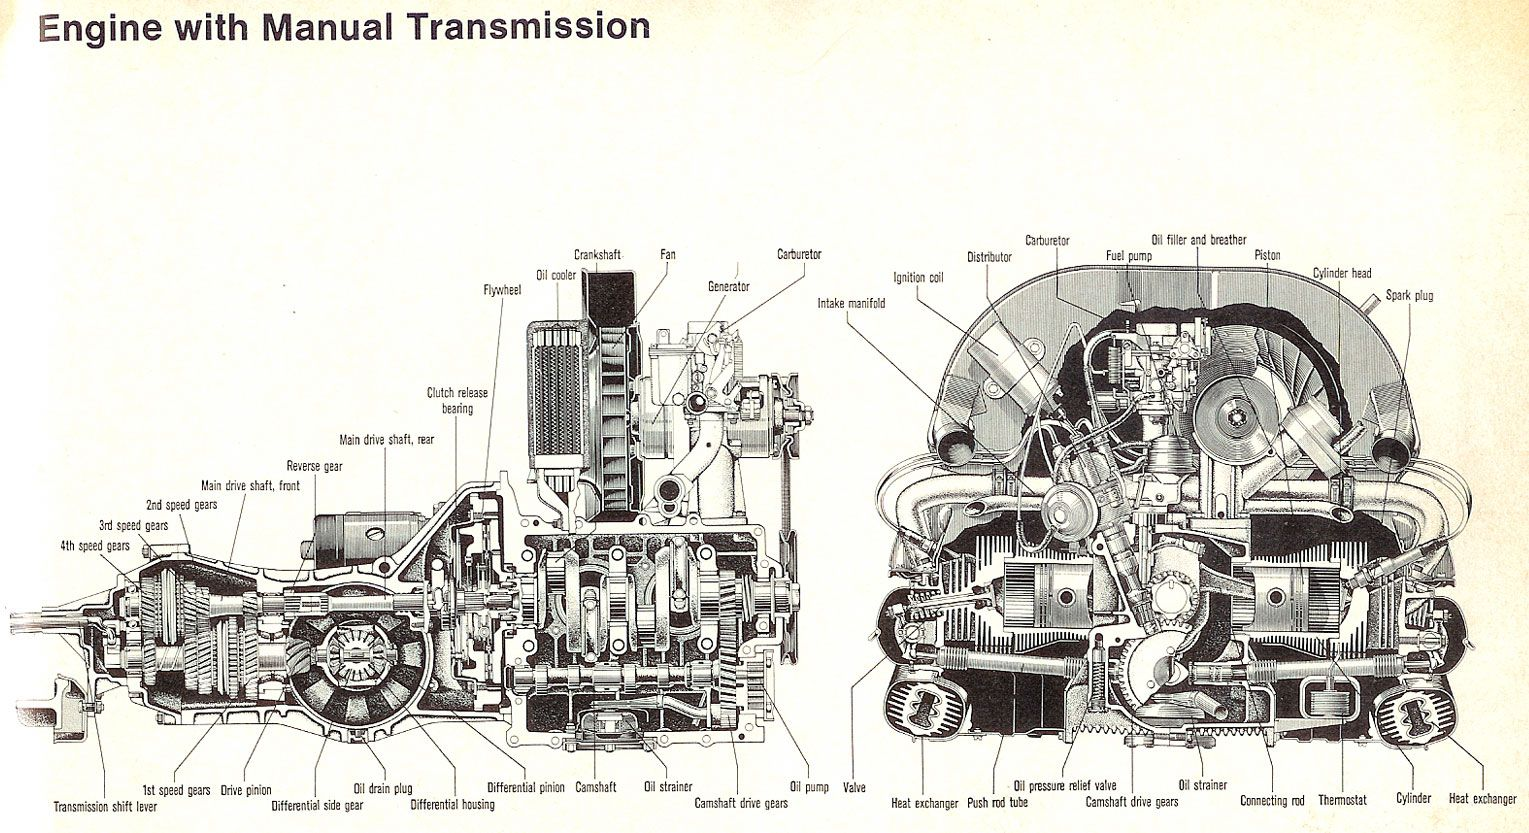 Vw Engine, Vw Tattoo, Exploded View, Vw Beetles, Manual Transmission, Motor